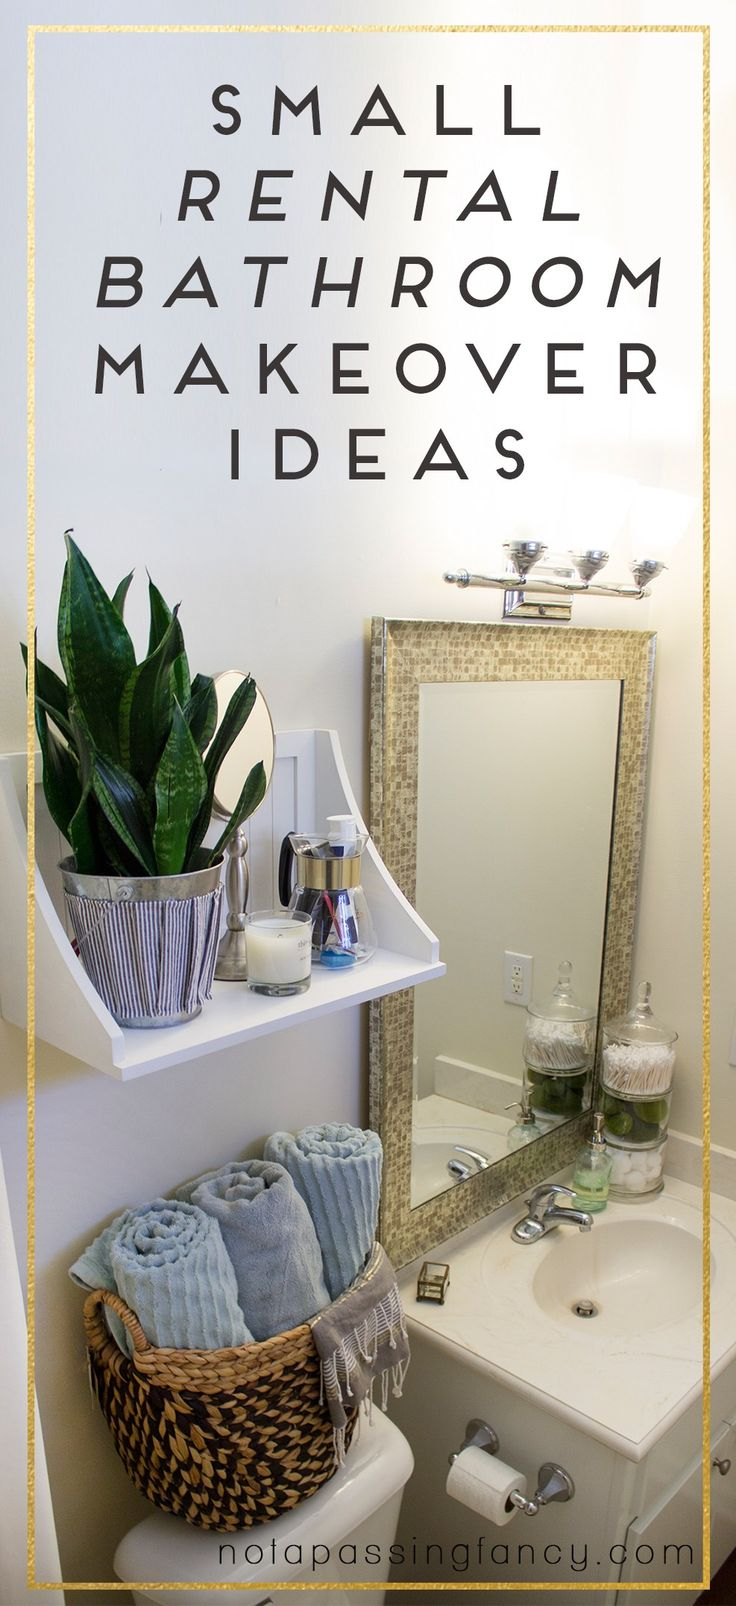 Best 25 college apartment bathroom ideas on pinterest apartment best 25 college apartment bathroom ideas on pinterest apartment closet organization small apartment organization and room organization amipublicfo Choice Image